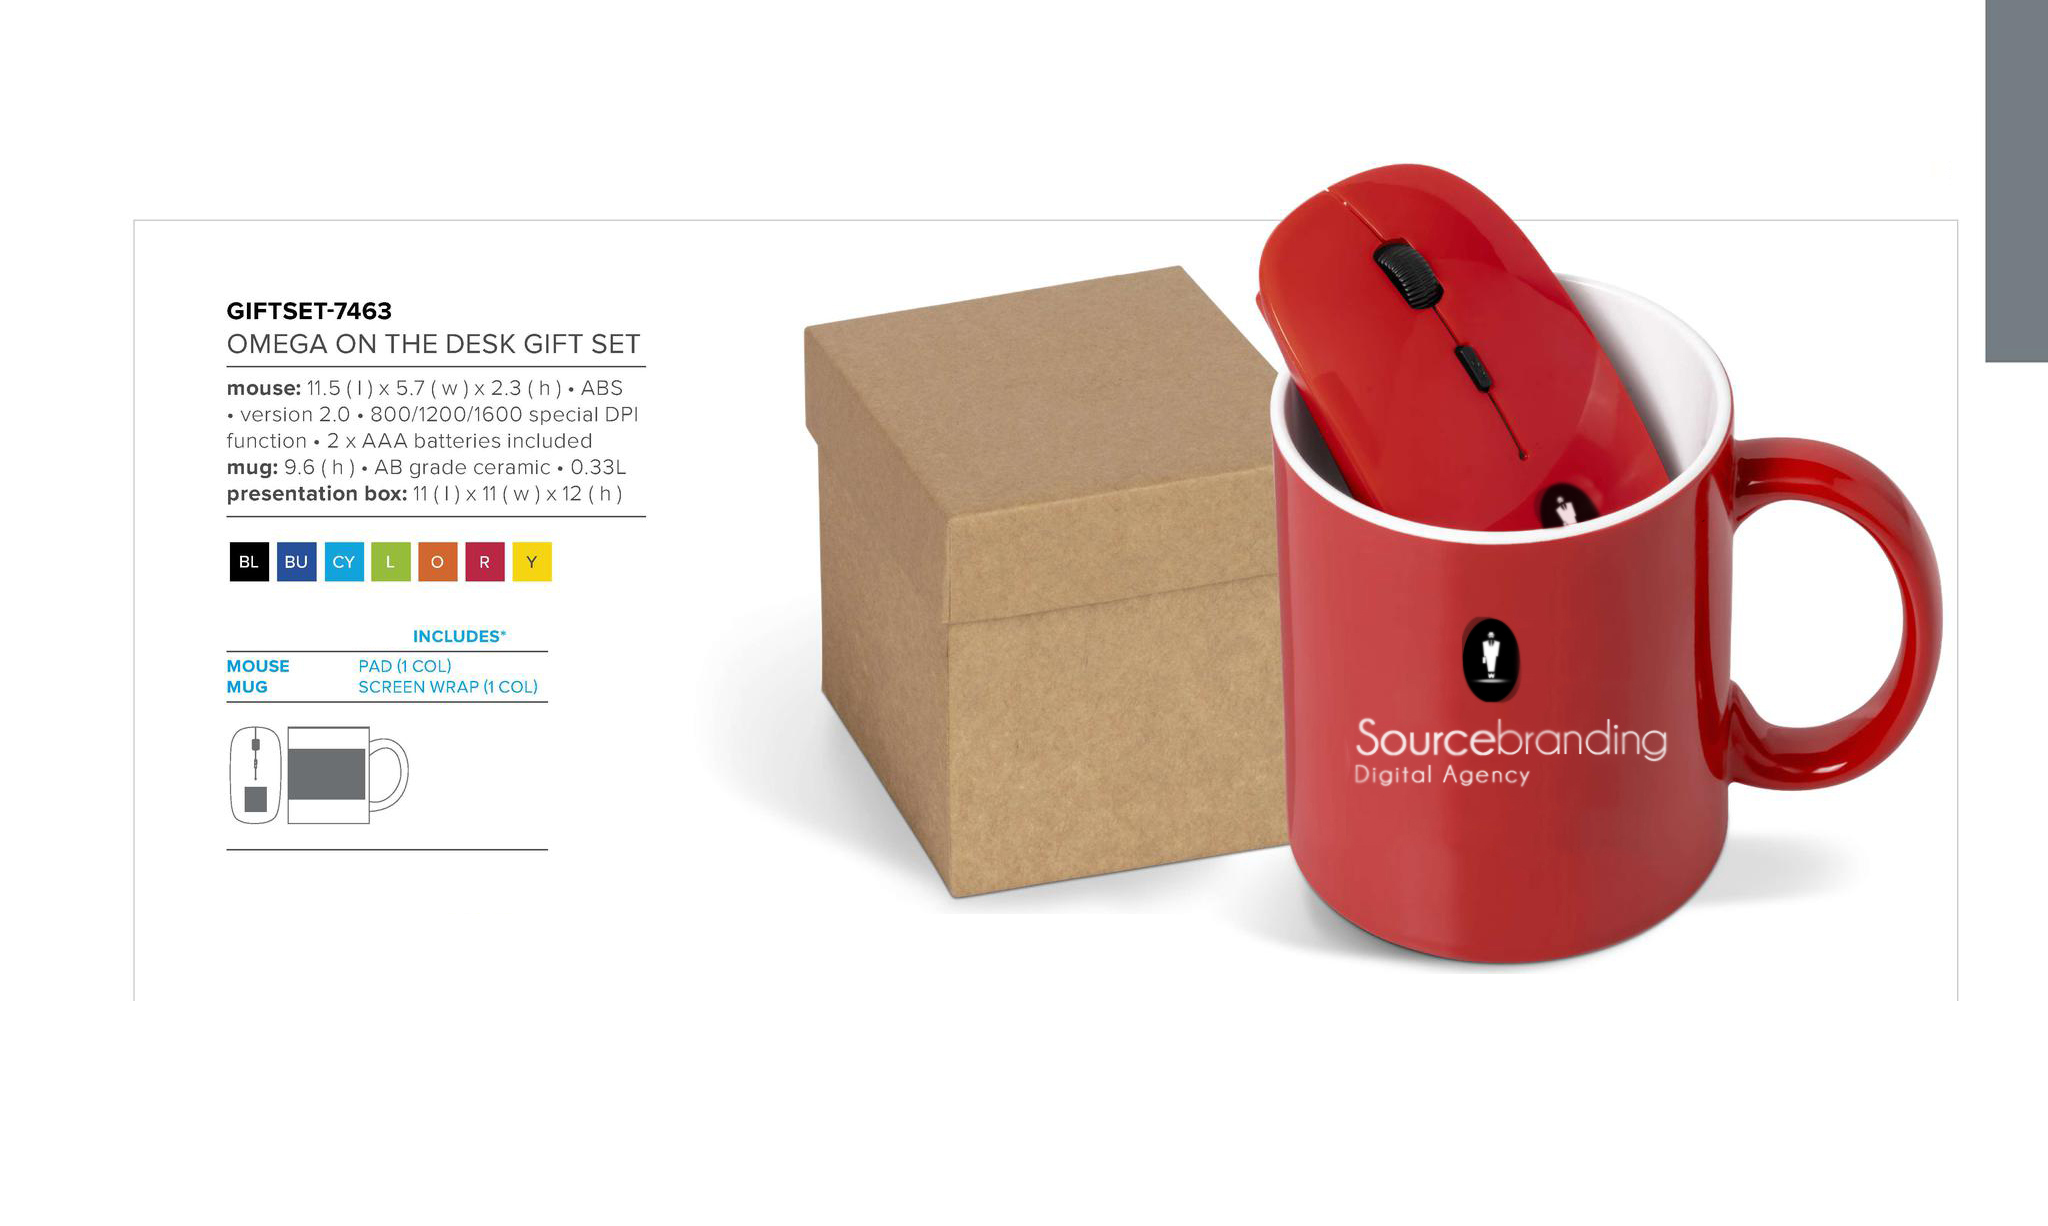 Sourcebranding mouse mug presentation box